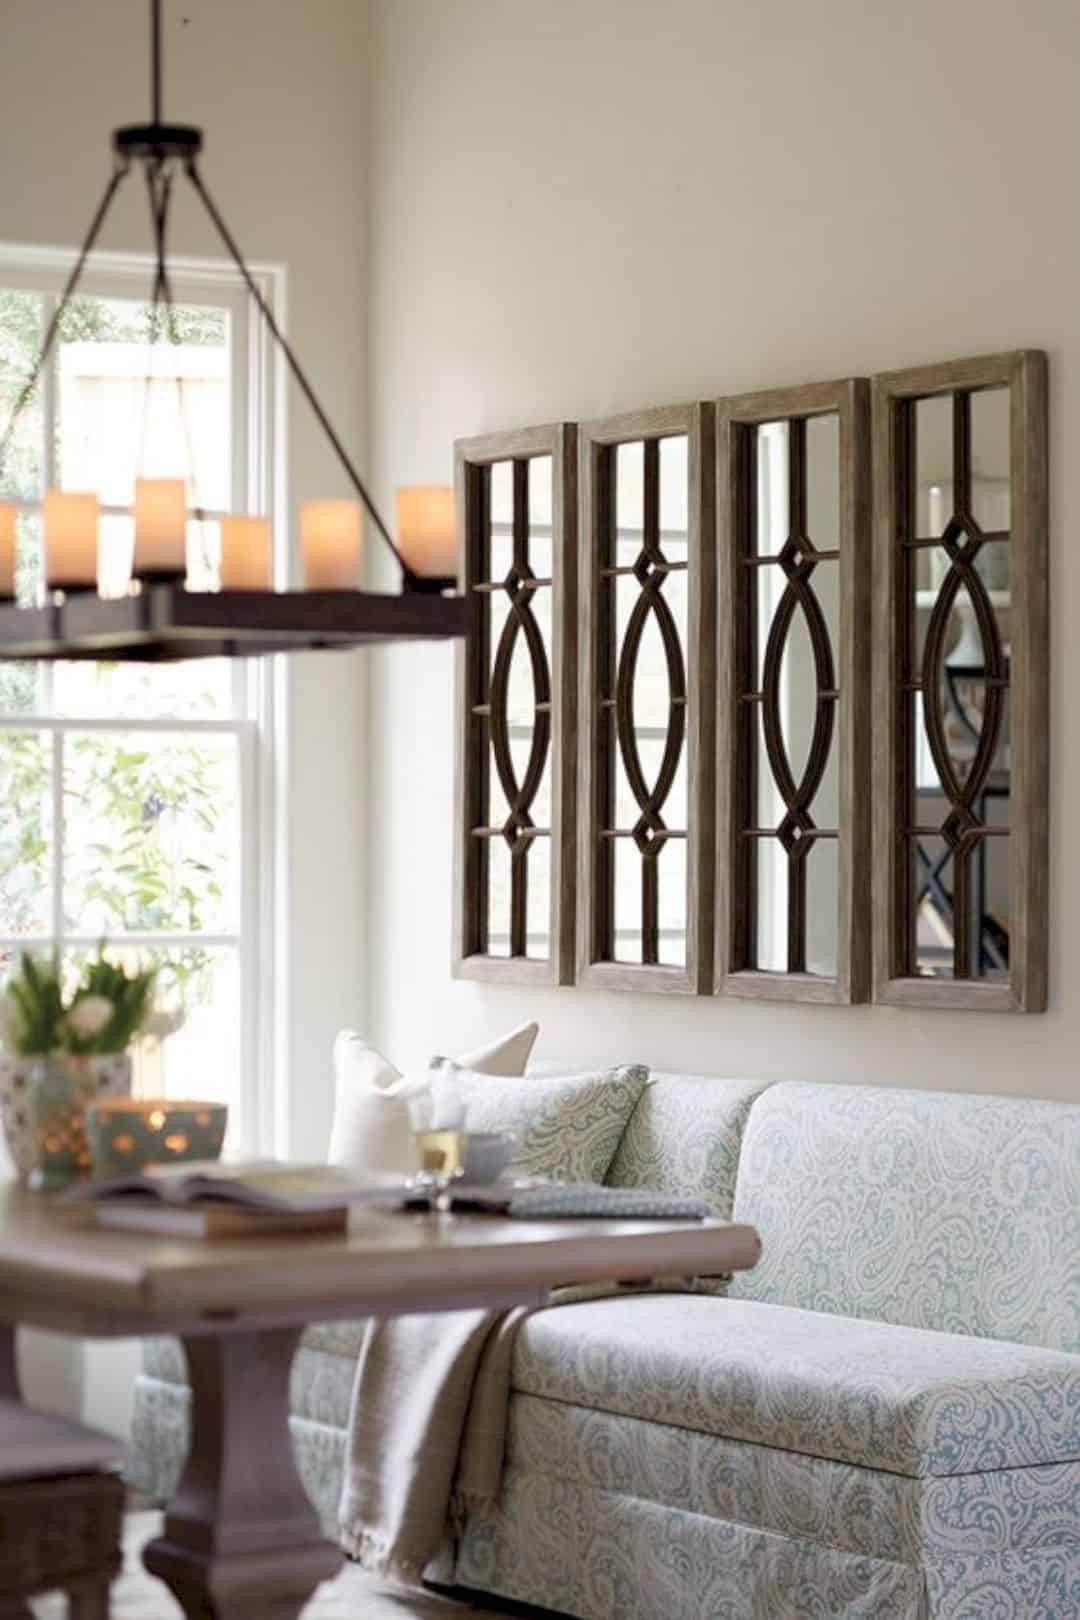 Dining Room Wall Decor Ideas Lovely 16 Dining Room Wall Decorating Ideas